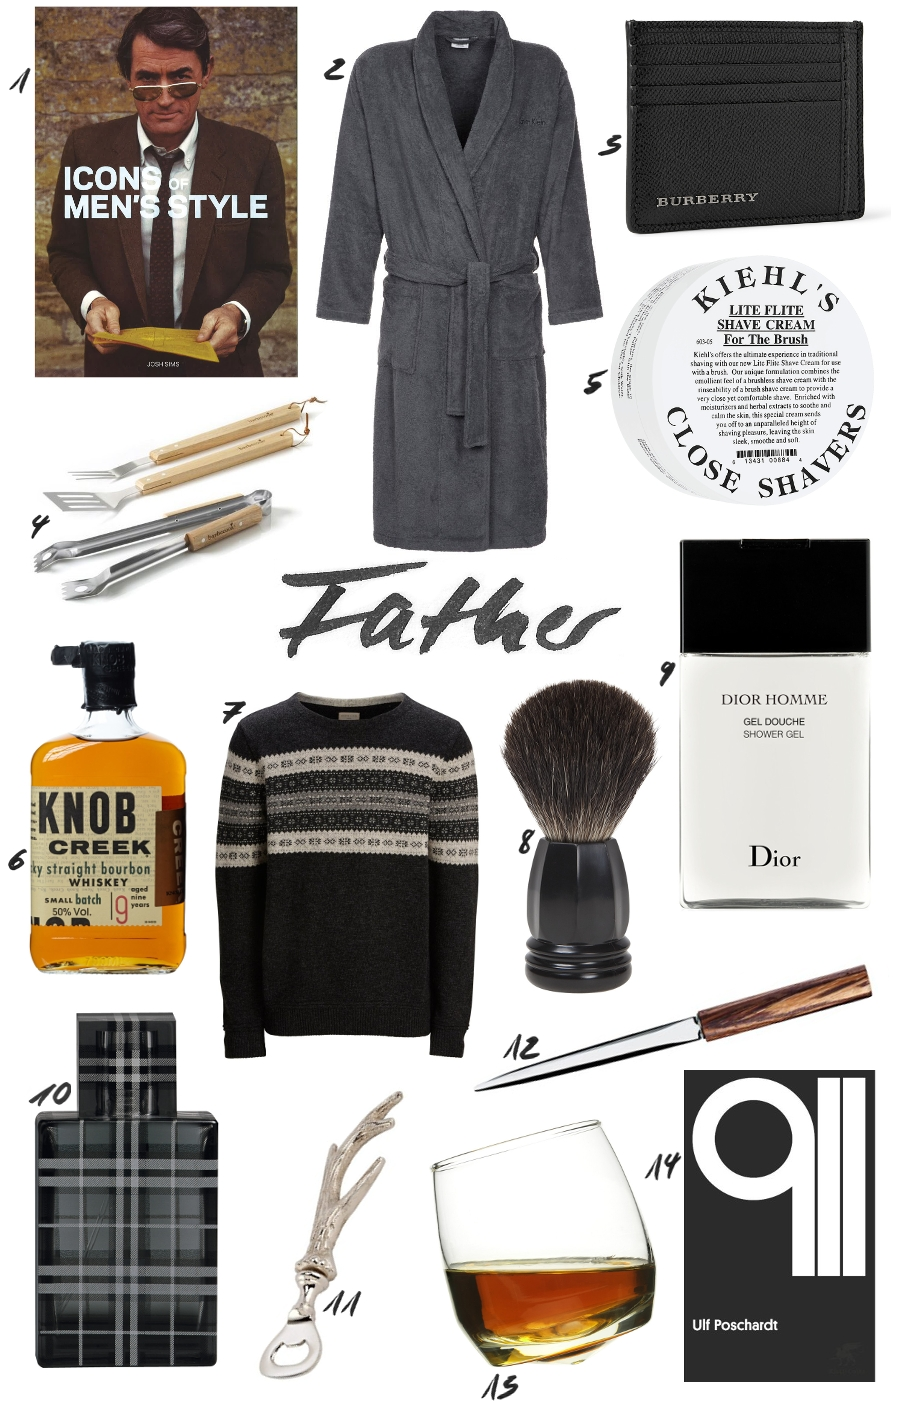 10 Attractive Gift Ideas For Dad For Christmas christmas gifts for dad 1 2020